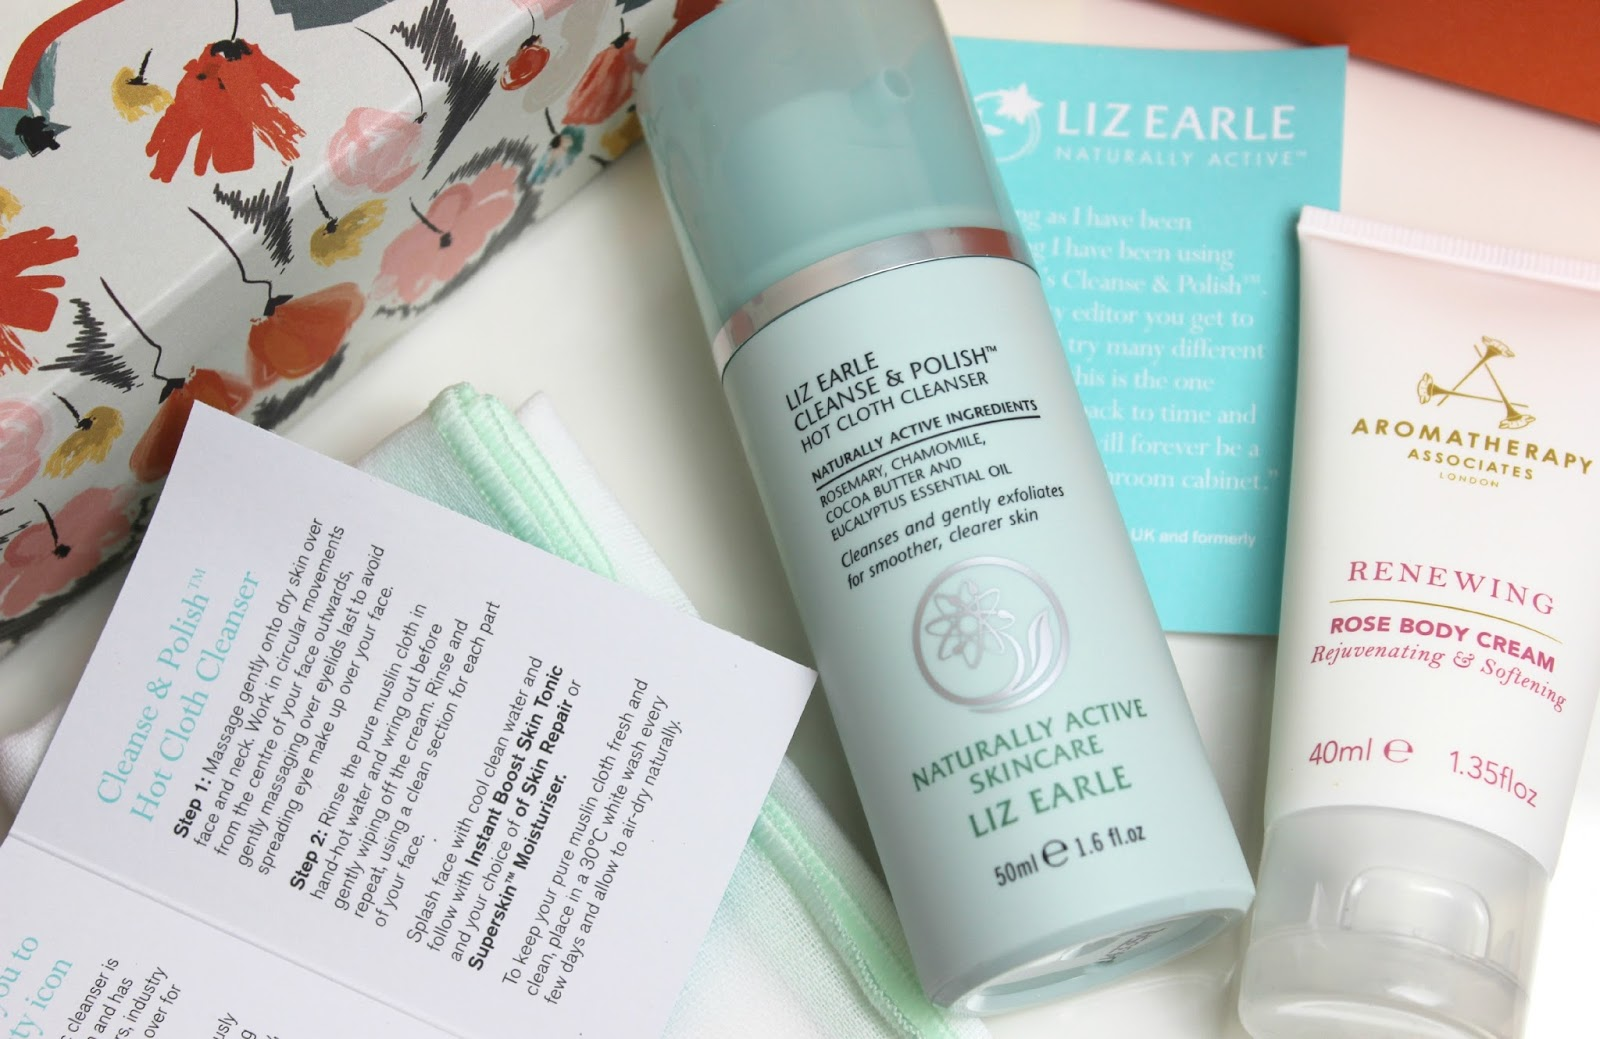 A picture of Liz Earle Beauty Co. Cleanse & Polish and Aromatherapy Associates Renewing Rose Body Cream